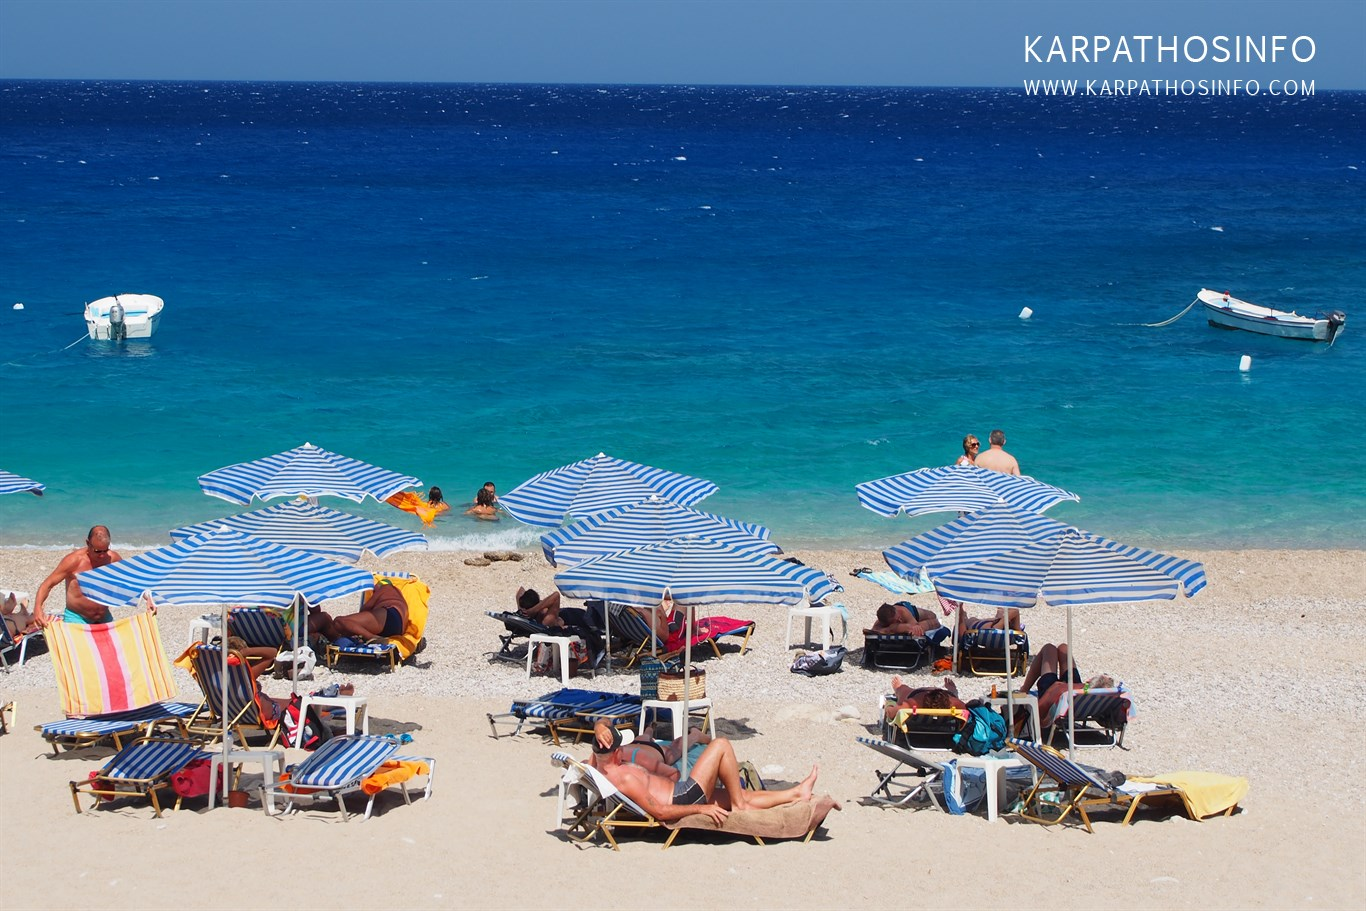 Karpathos in the summer months (June, July, August)